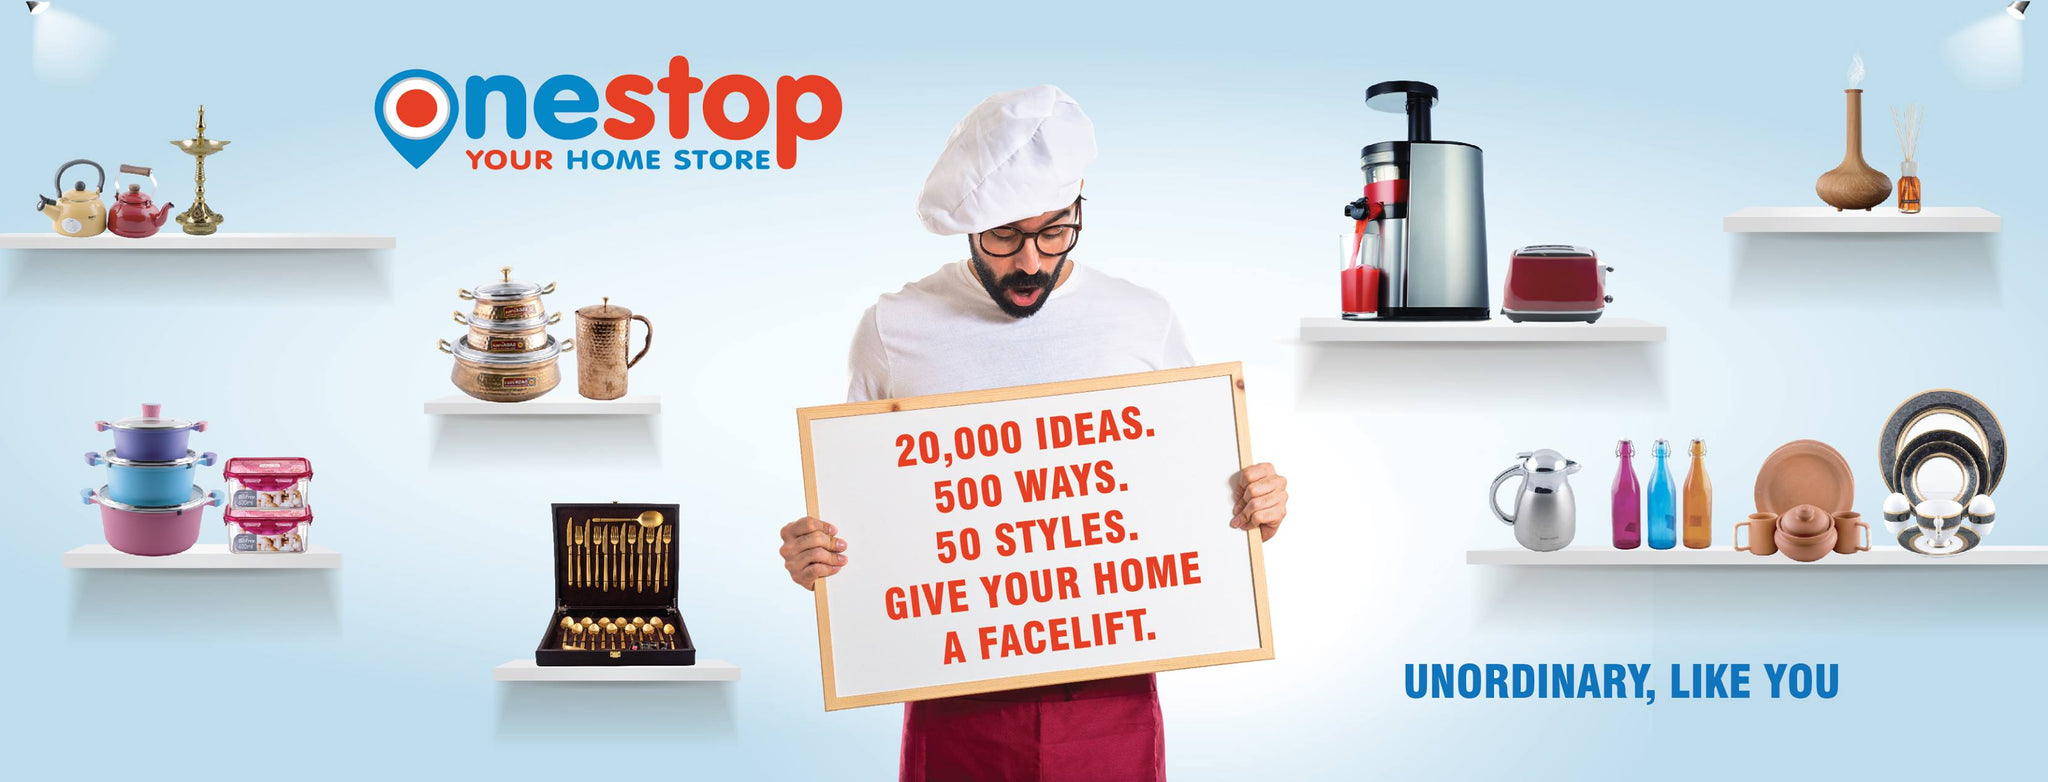 onestop-about-us